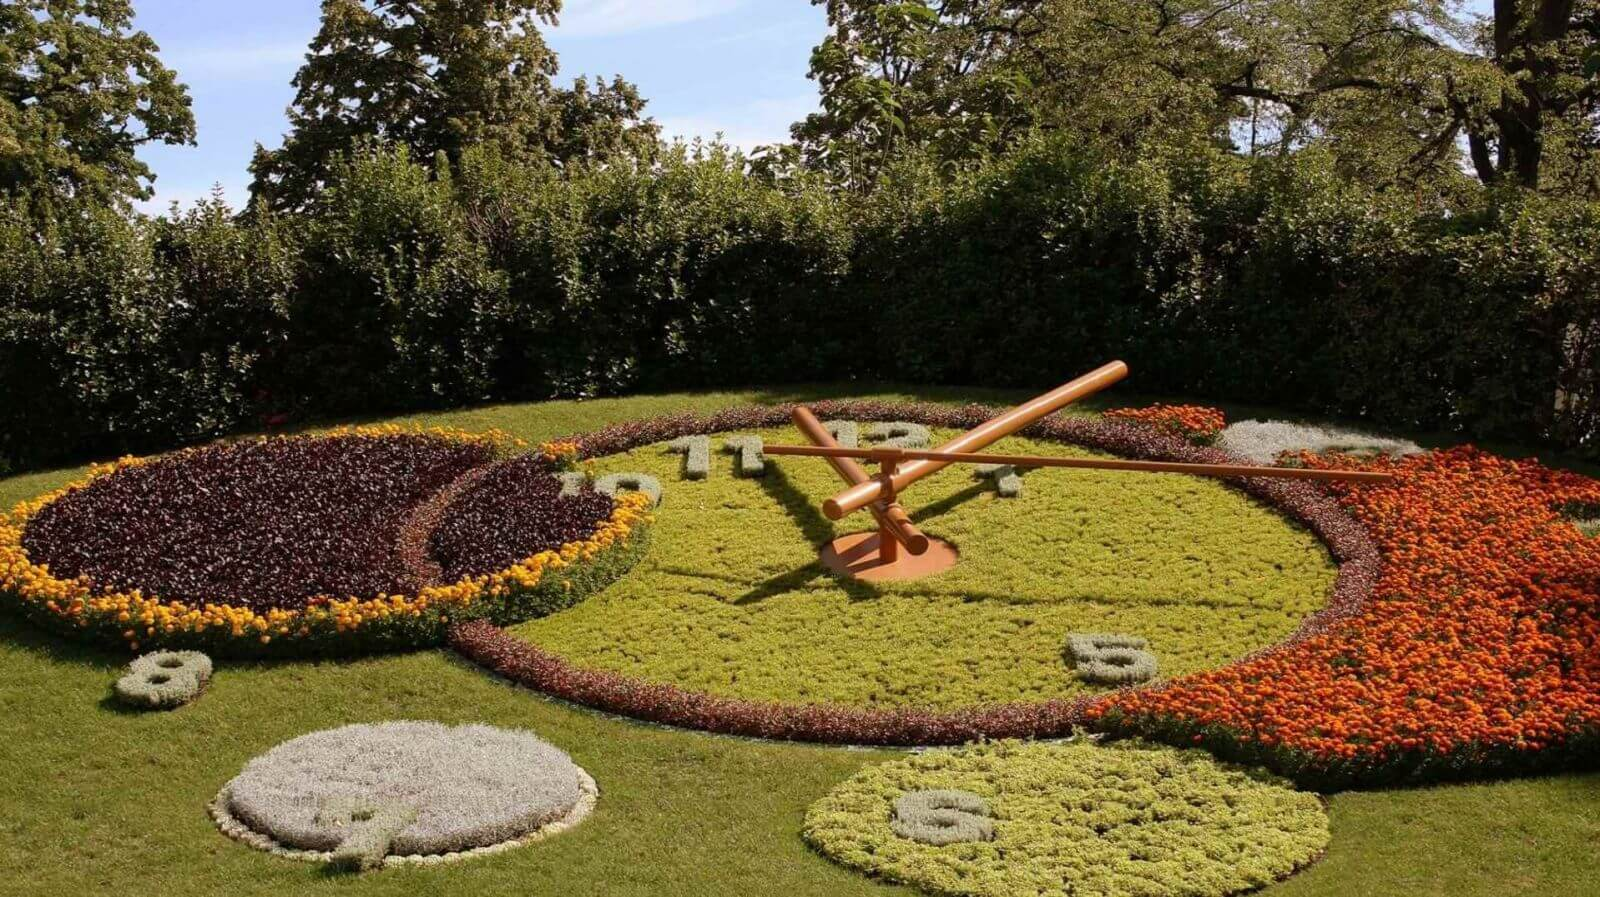 Flower clock or horloge Fleurie